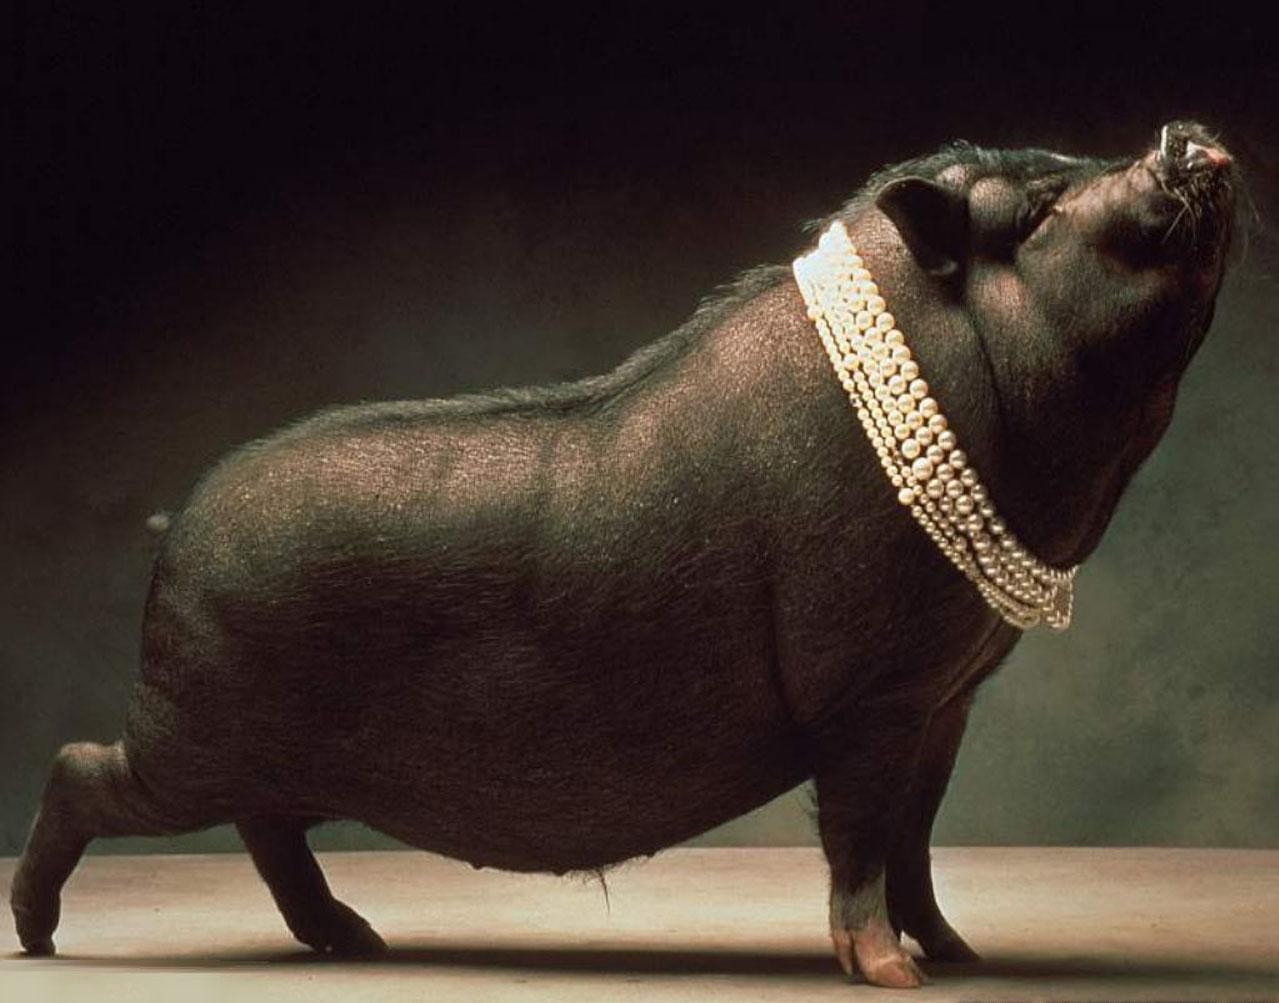 Pig Wallpapers Fun Animals Wiki Videos Pictures Stories 1279x1003